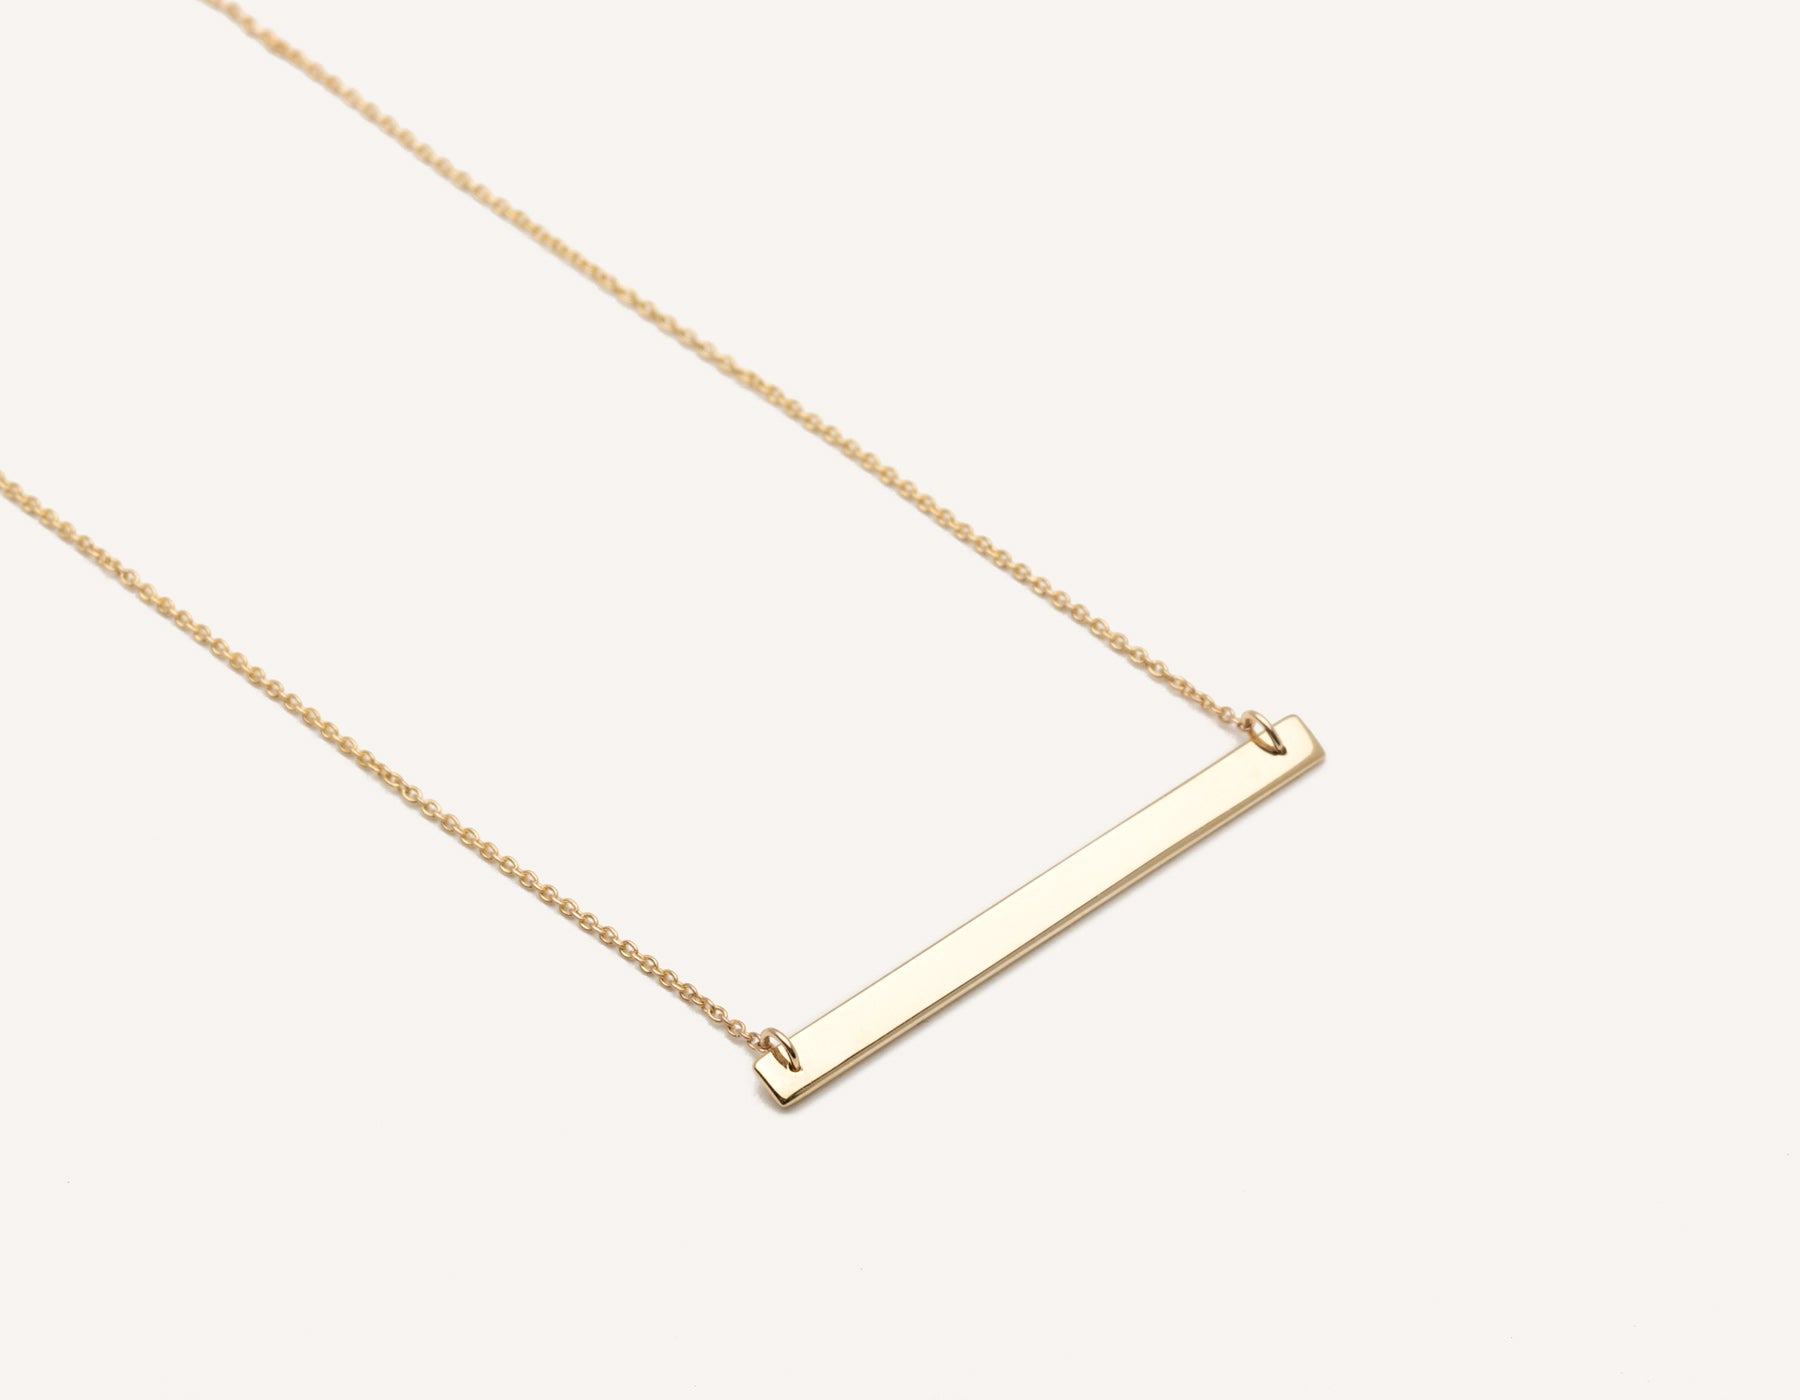 simple custom 14k solid gold thin Bar Necklace on delicate 17 inch chain by Vrai & Oro modern jewelry, 14K Yellow Gold